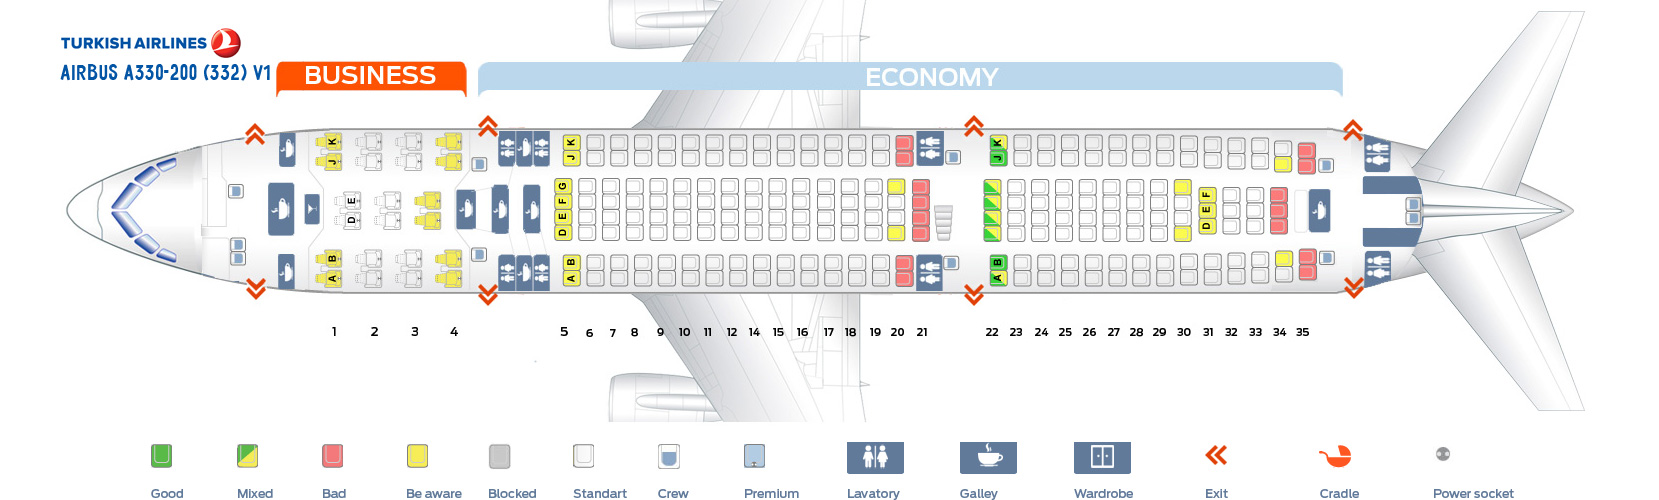 Seat Map Airbus A330-200 V1 Turkish Airlines